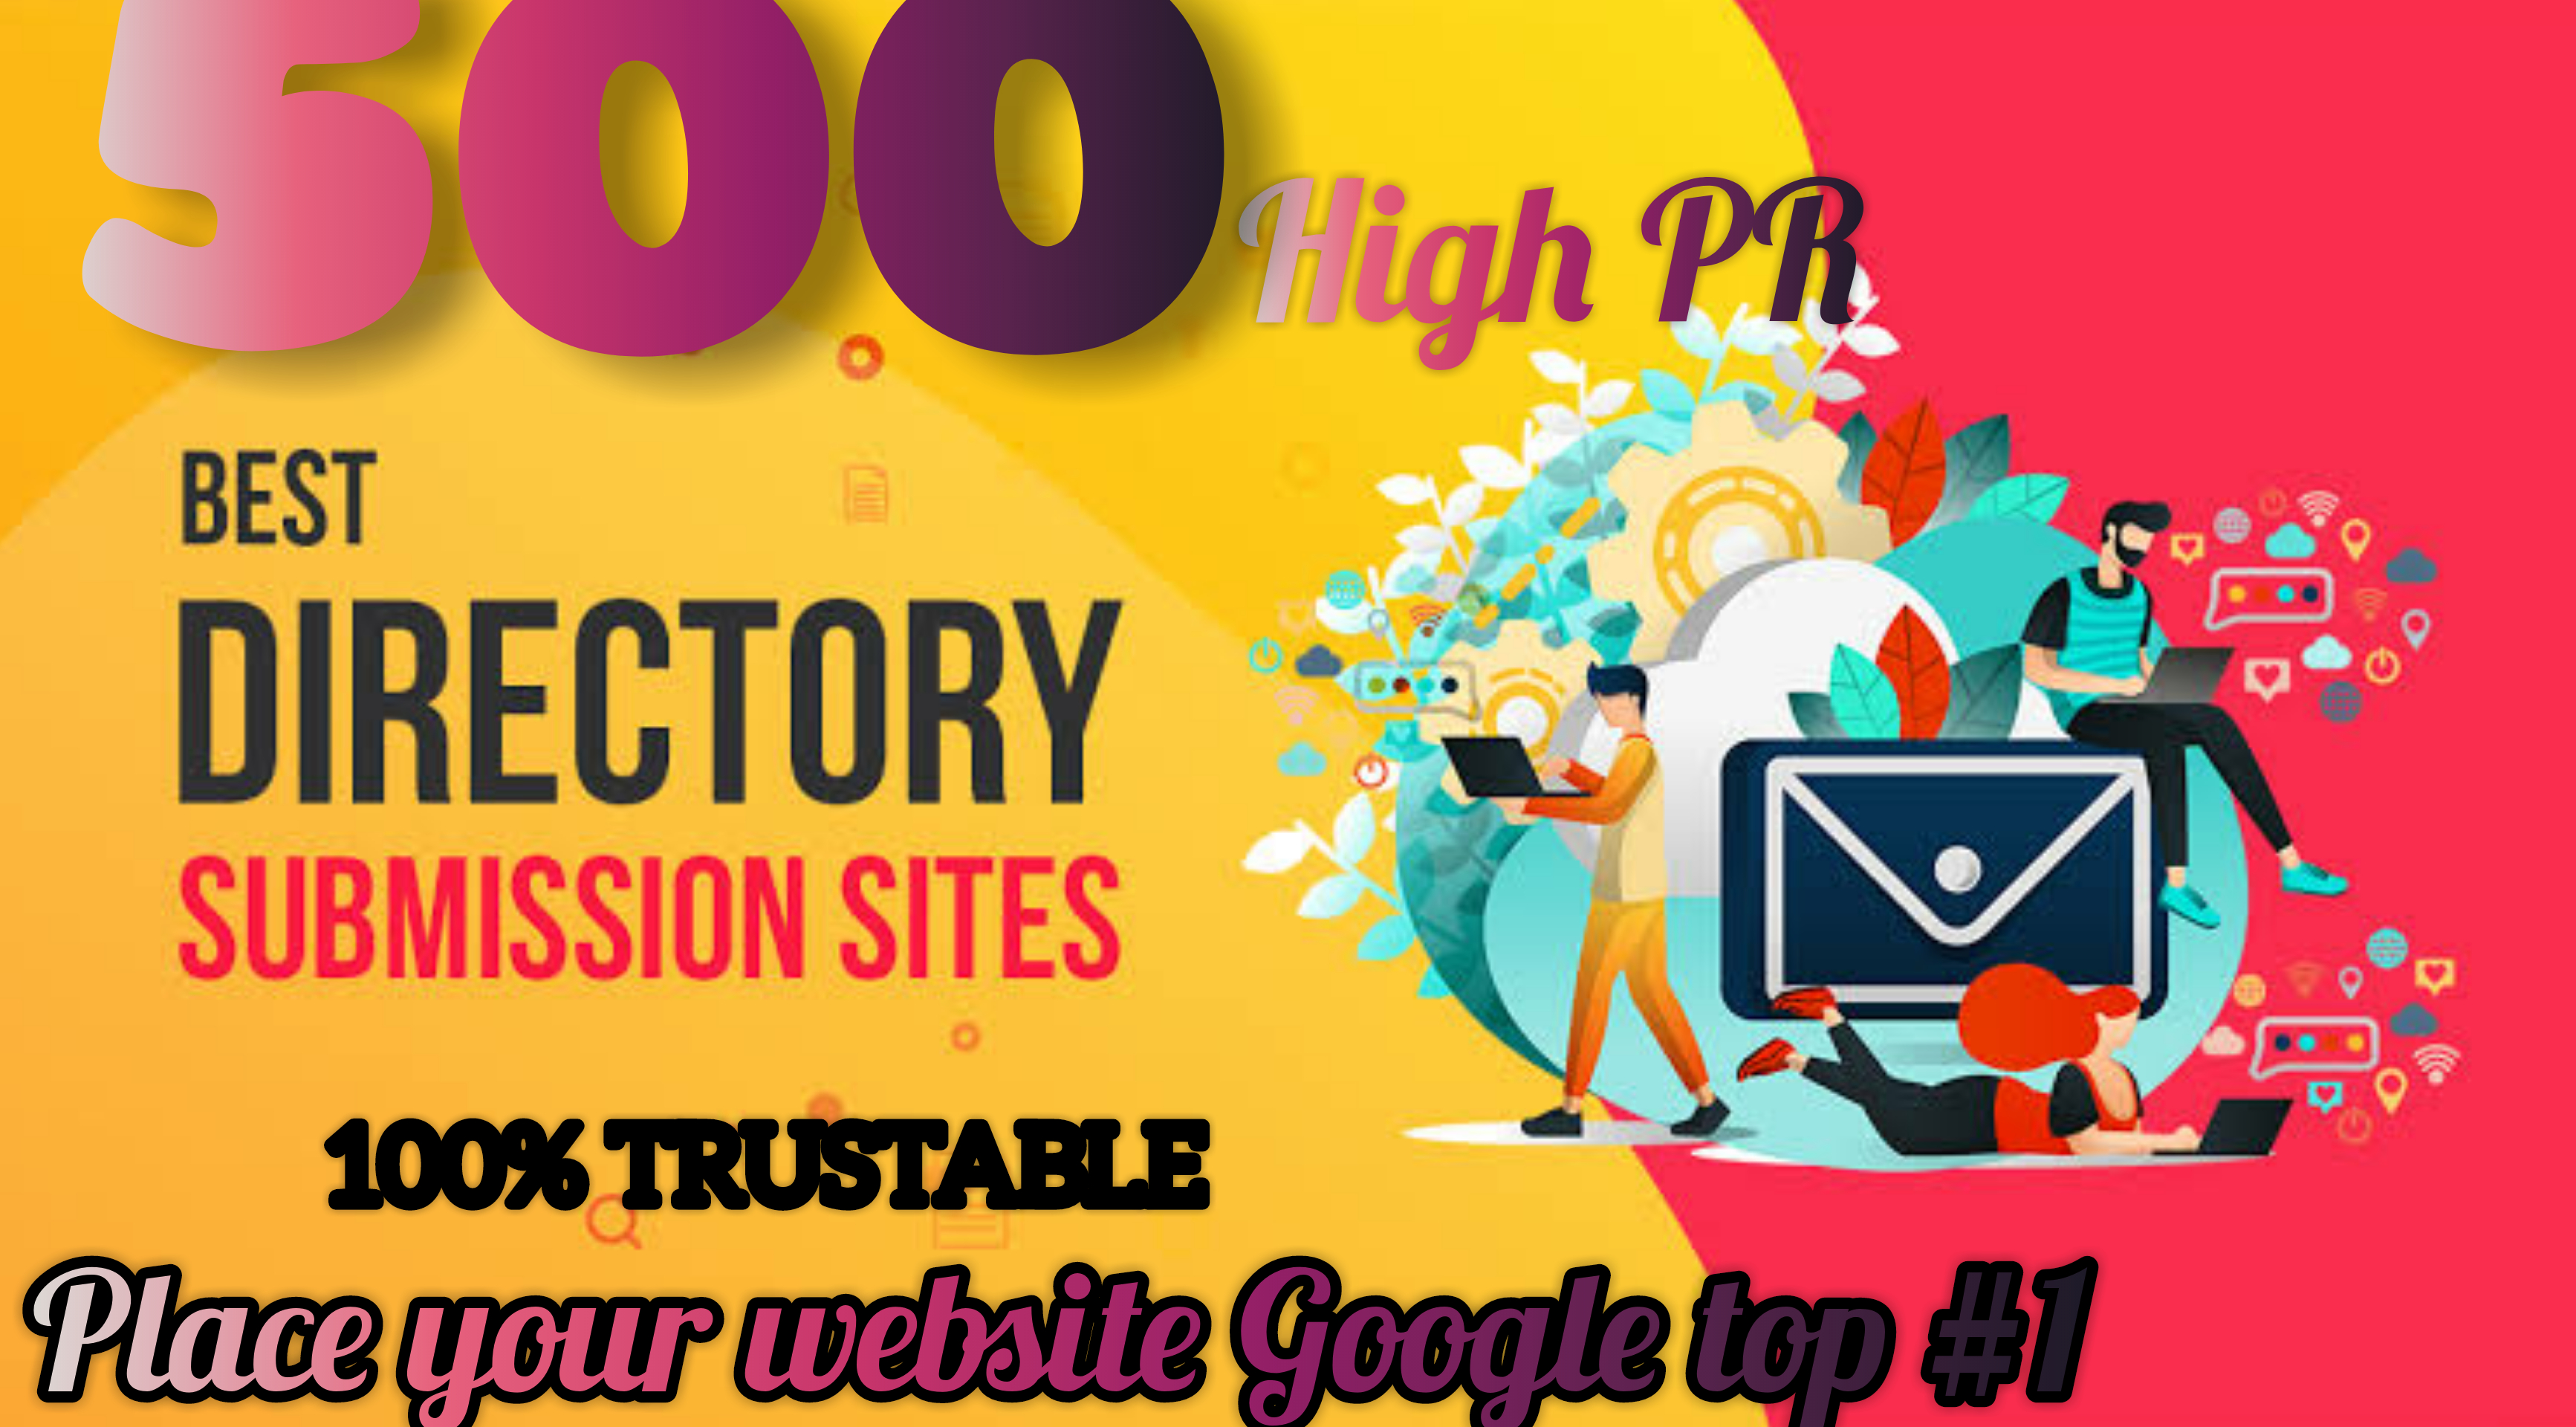 Get 500 Do-follow High PR4-PR7 Highly Authorized Google Dominating Backlinks for 1